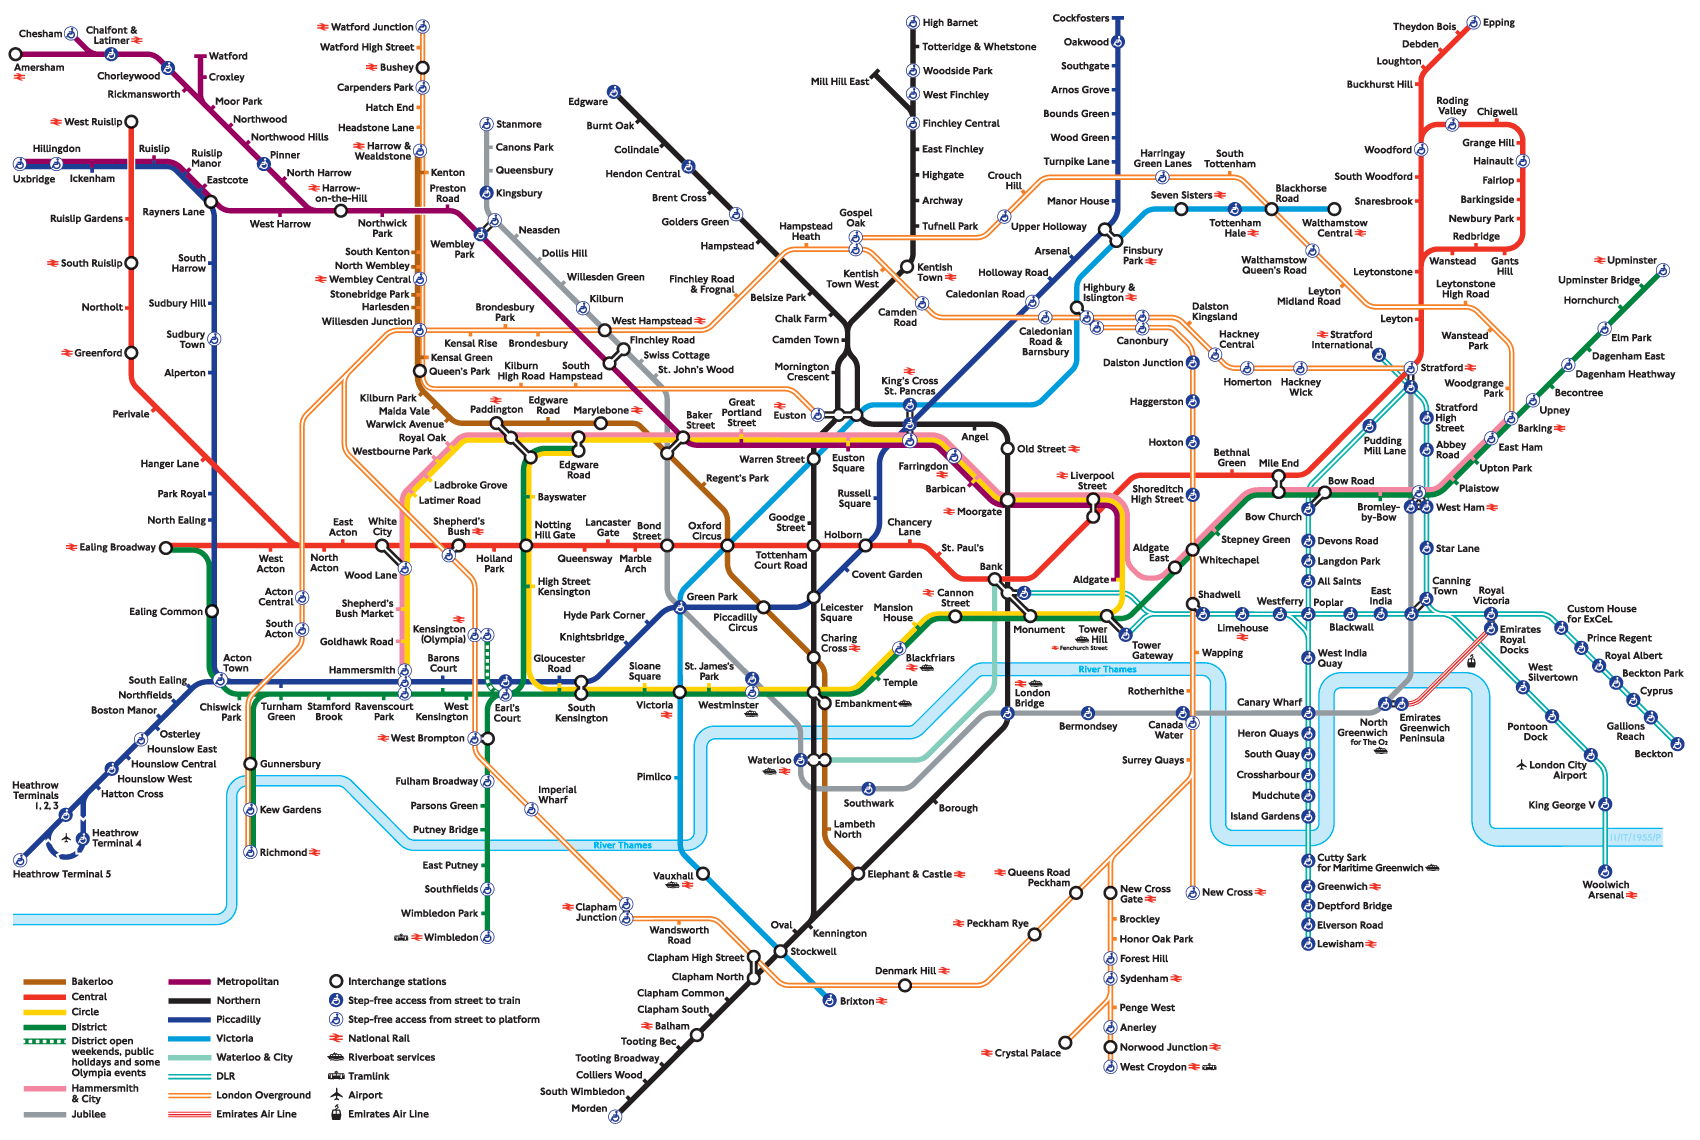 Map of London Underground